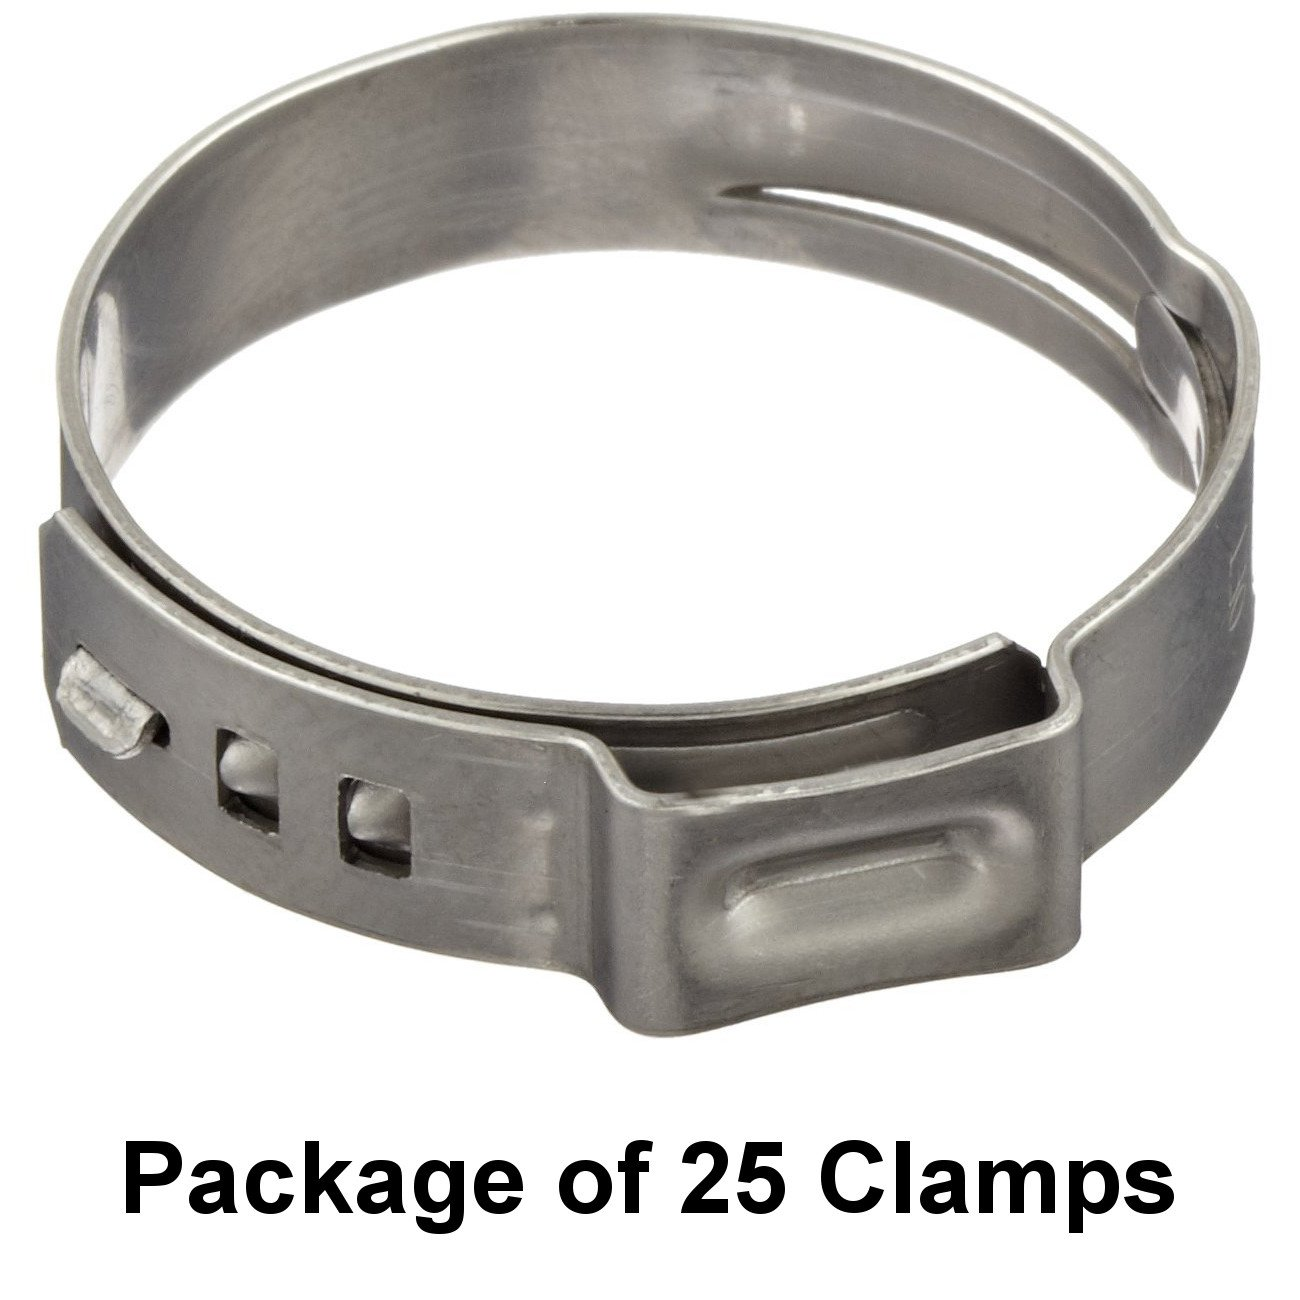 Single Ear Hose Clamps 7 Pack Sizes Available 5 Size 4 102.5 mm Oetiker Stepless Ear Clamps